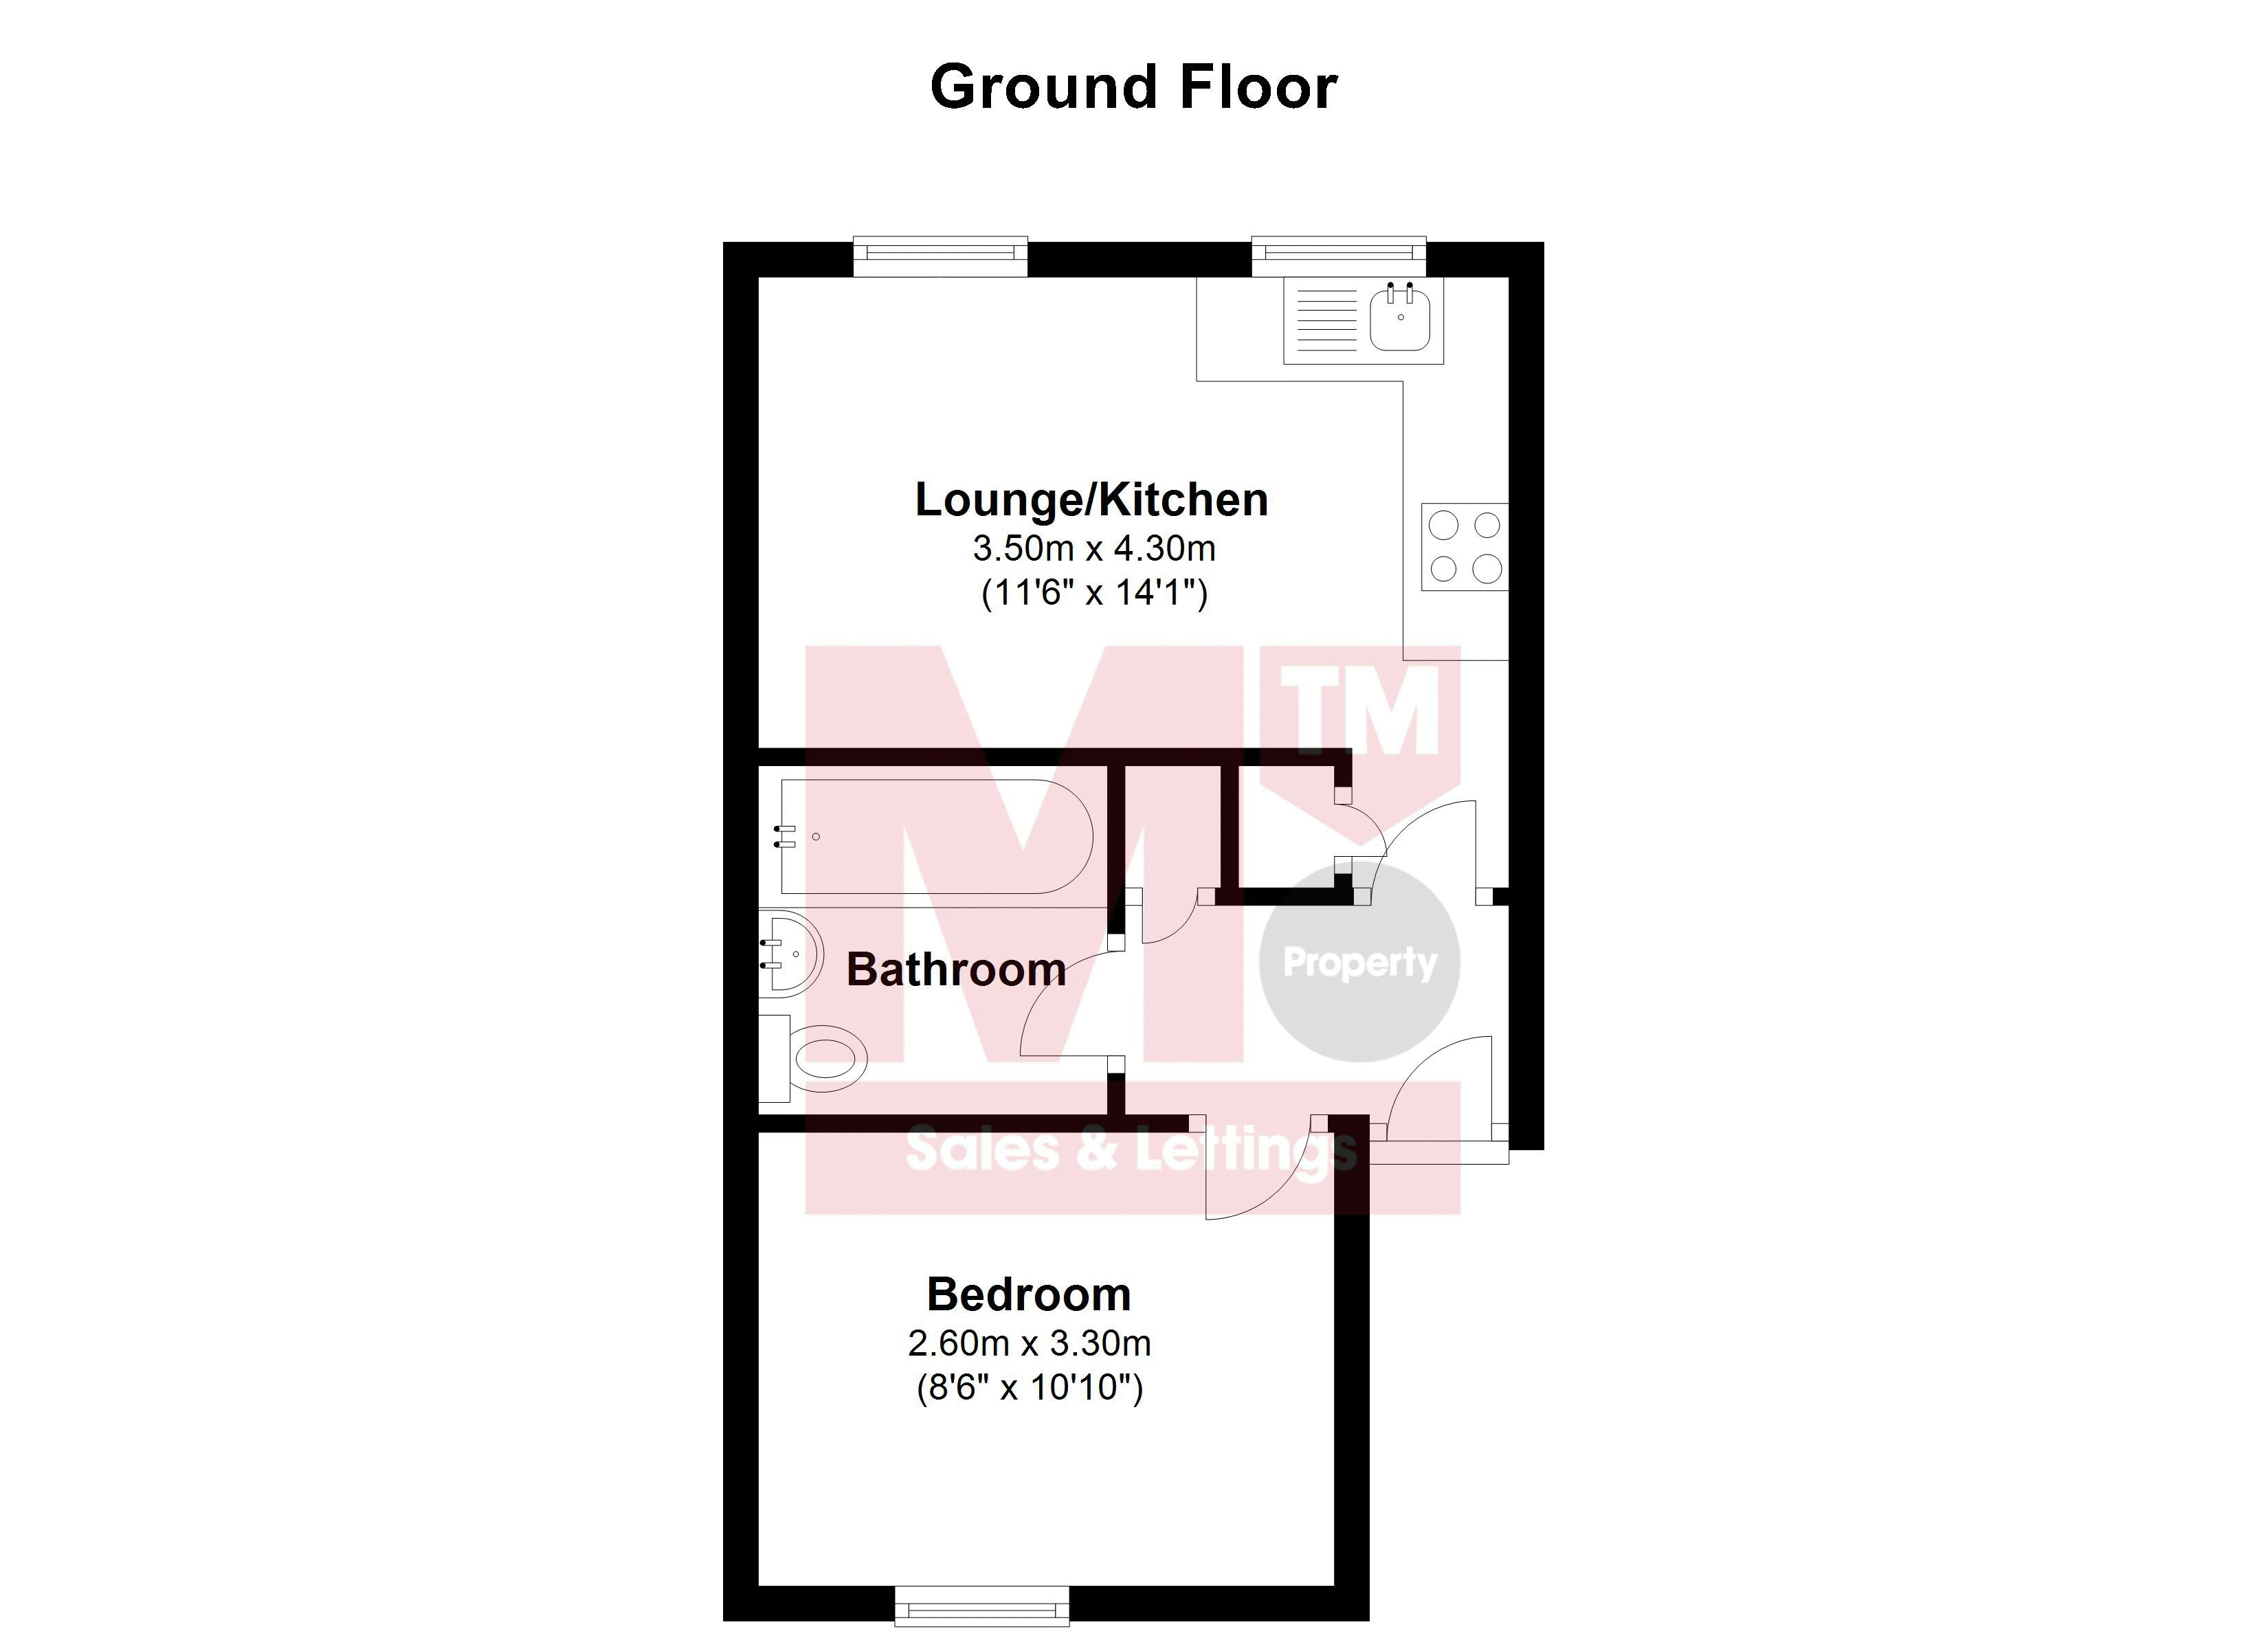 Floor plans for George Street, Brighton property for sale in Kemptown, Brighton by Coapt